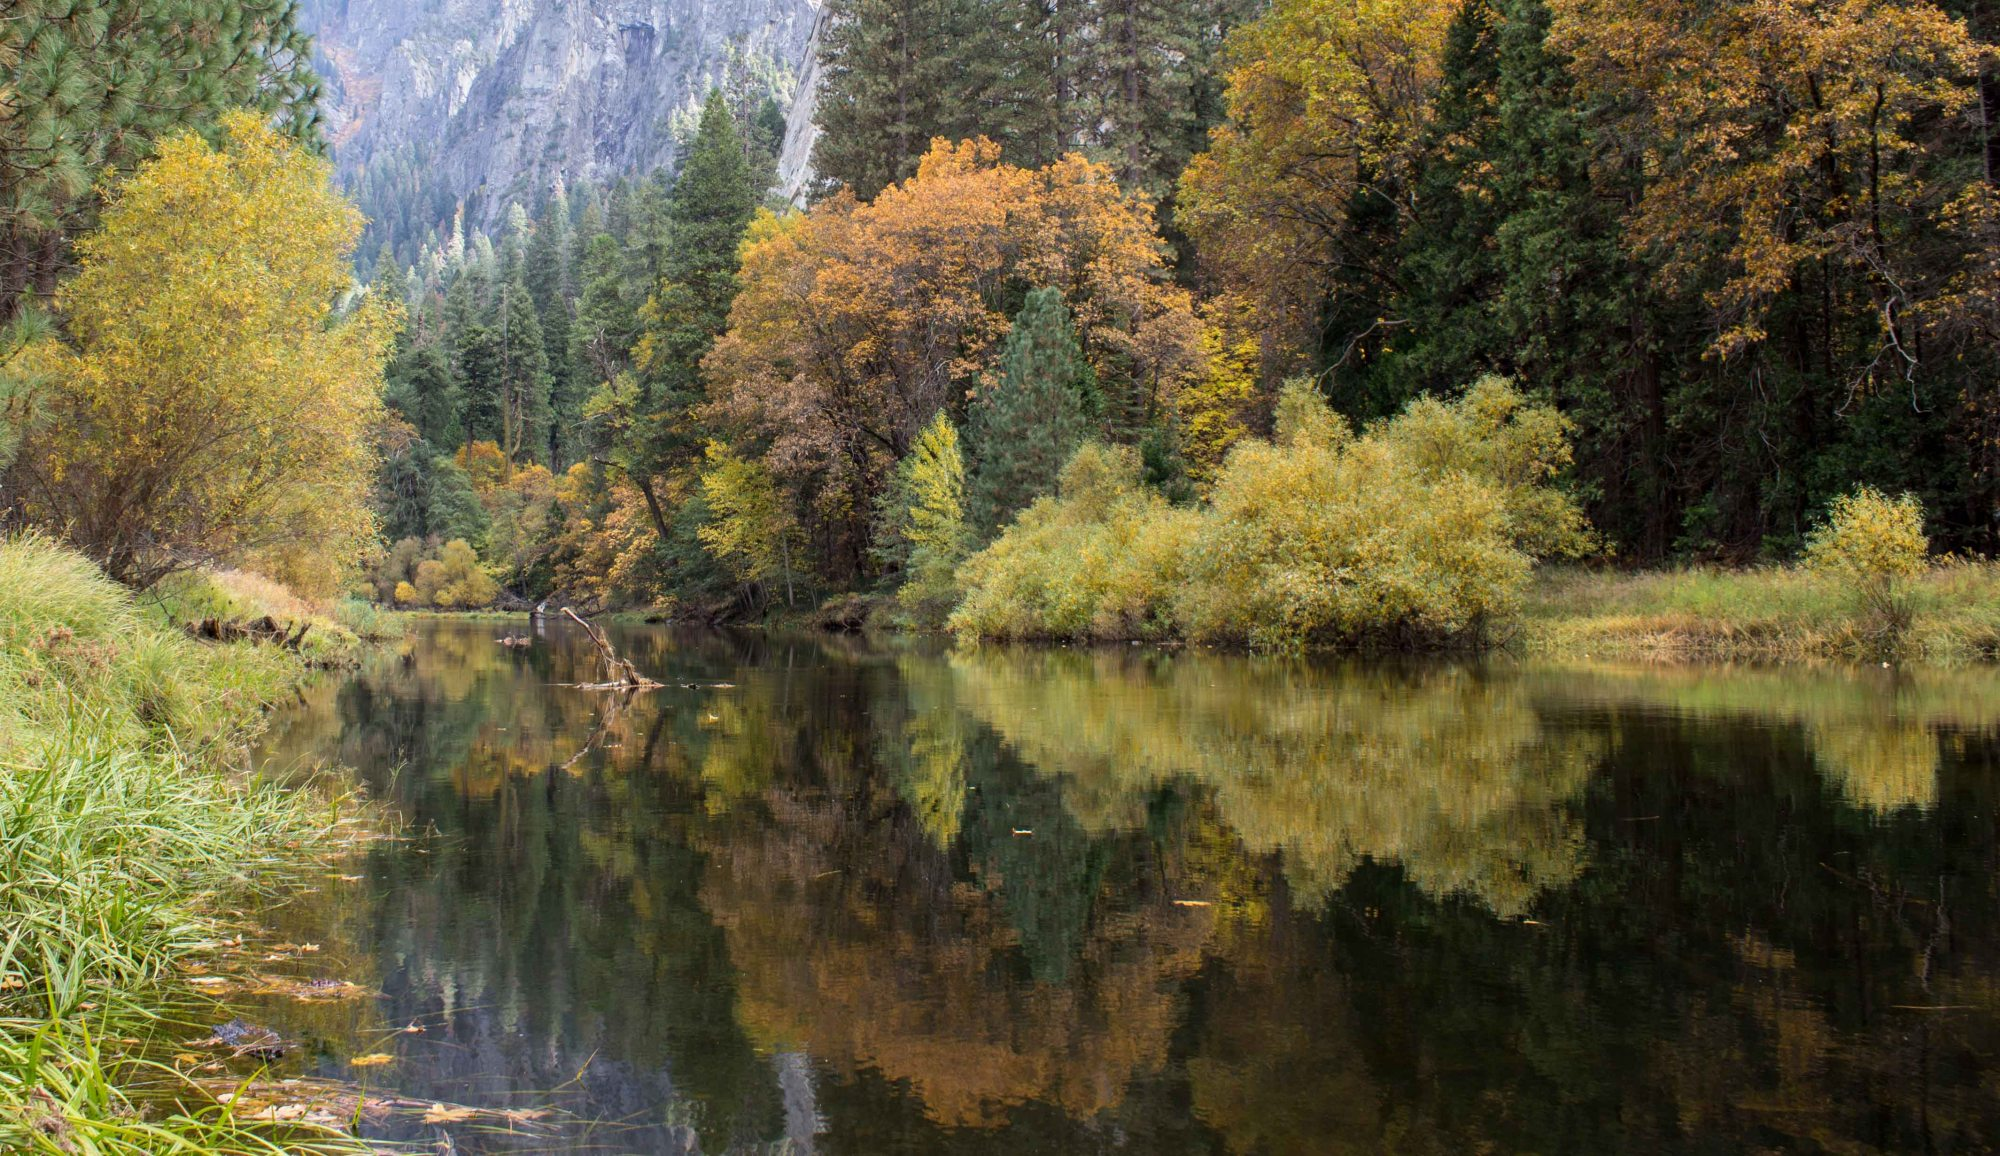 River reflection of fall foliage Yosemite National Park